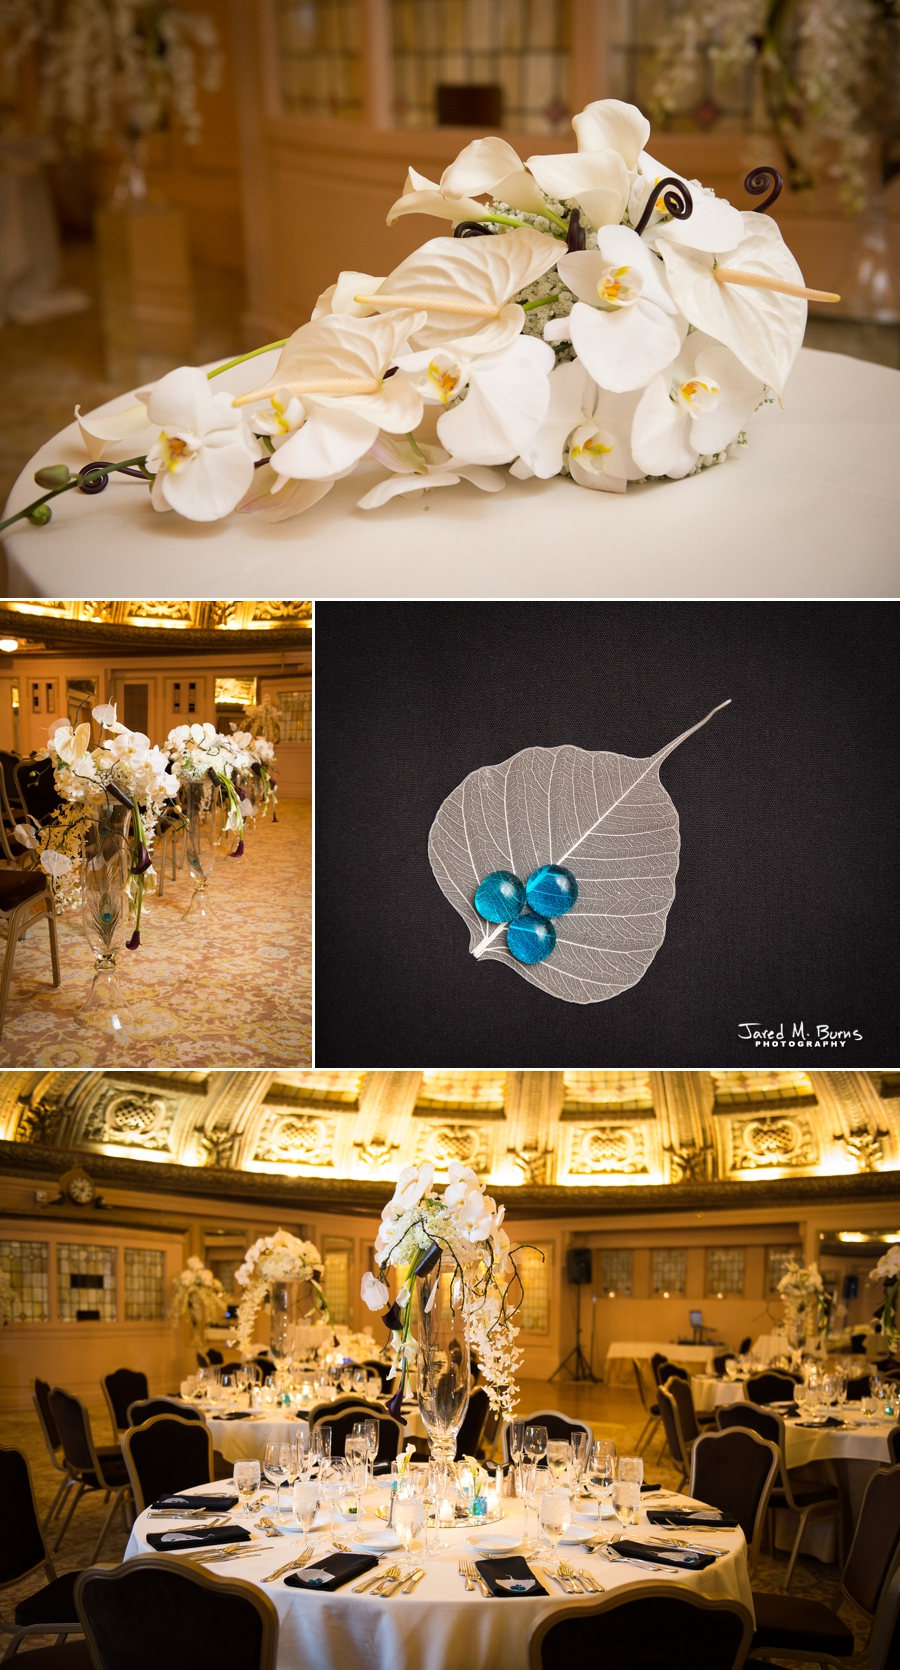 Seattle Wedding Photographer, Jared M. Burns - Arctic Ballroom Flowers Wedding Decor